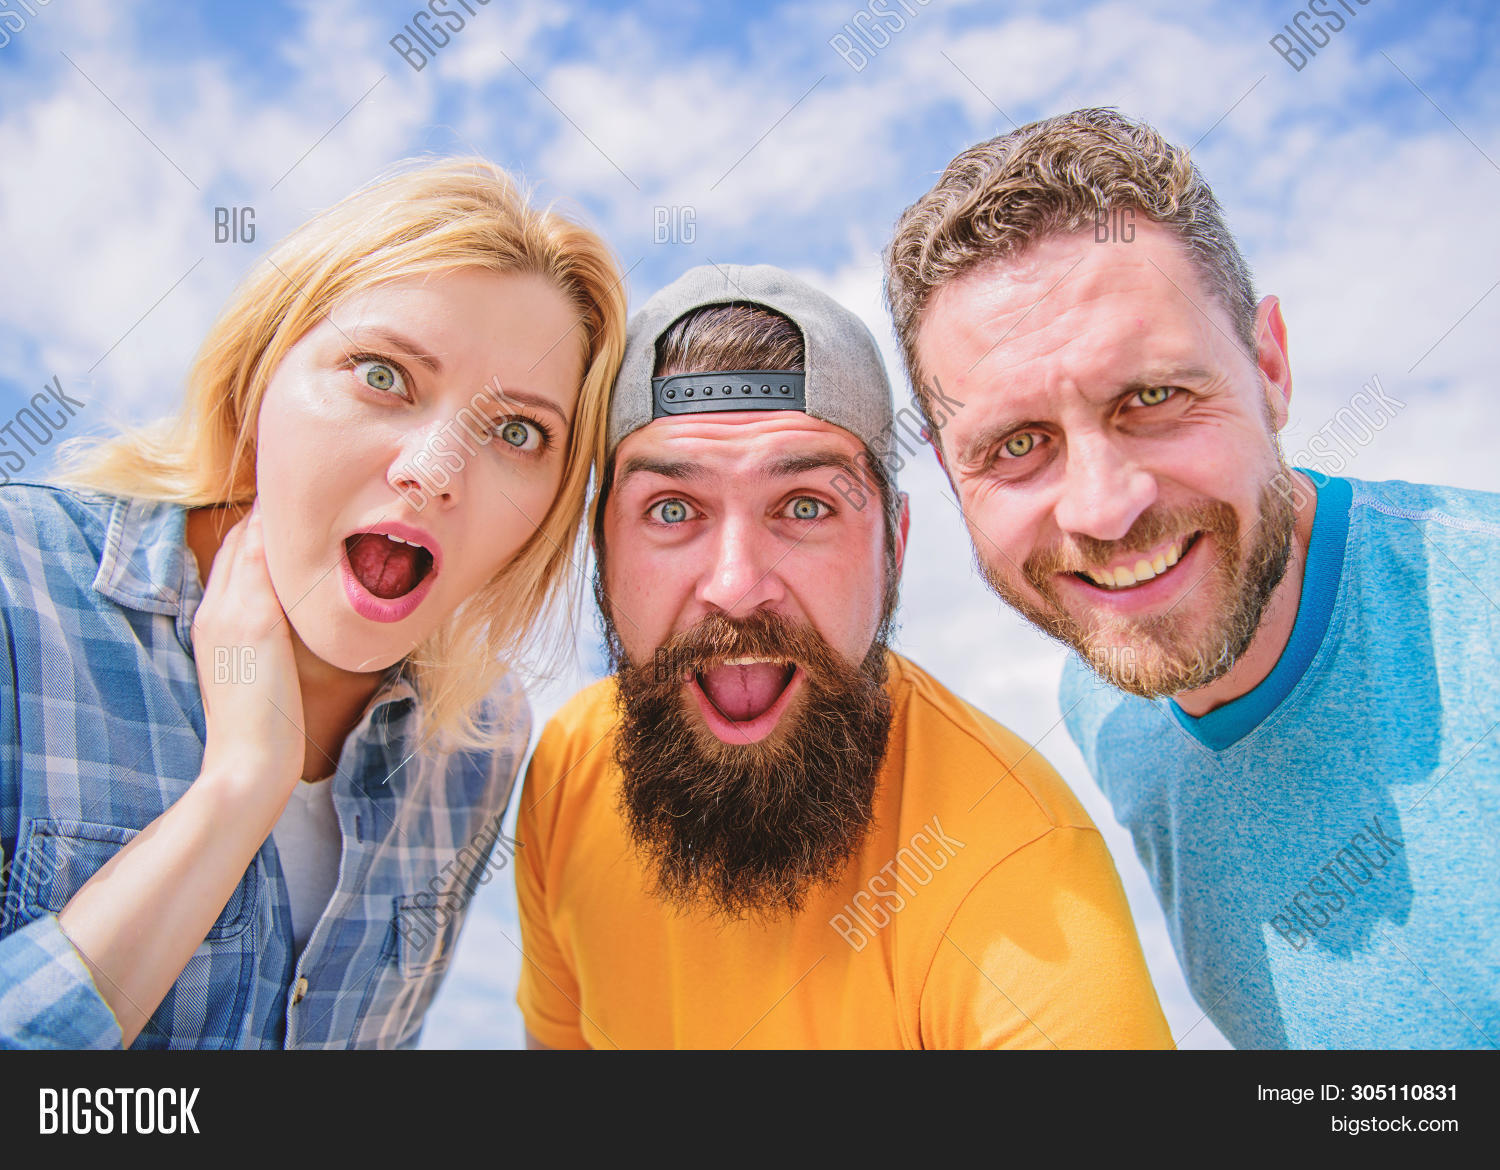 How To Impress People. Shocking Impression. Men With Beard And Woman Looking Shocked. No Way. Friend